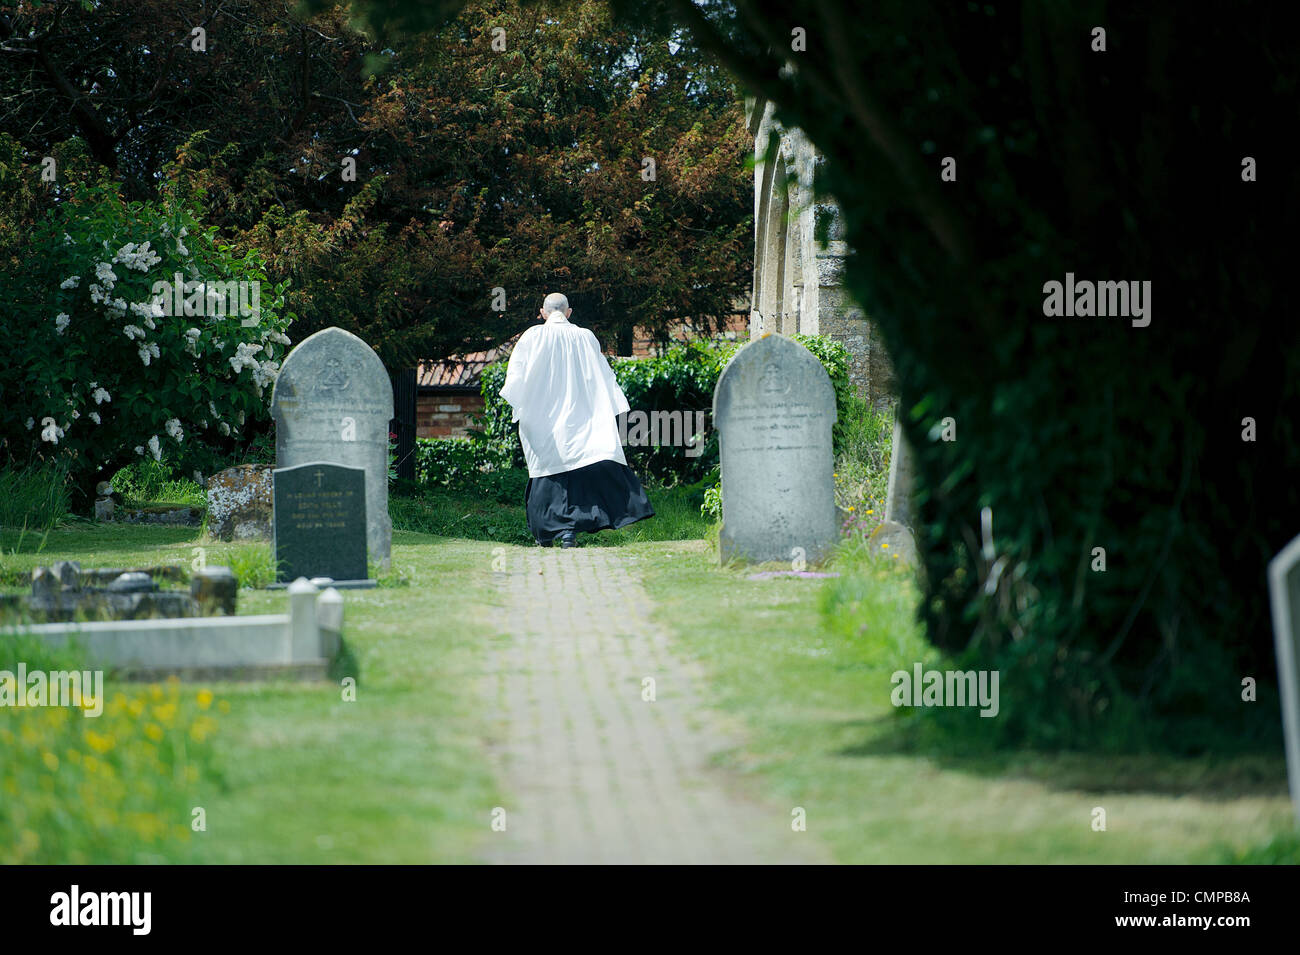 back of vicar walking towards church through graveyard past gravestones - Stock Image